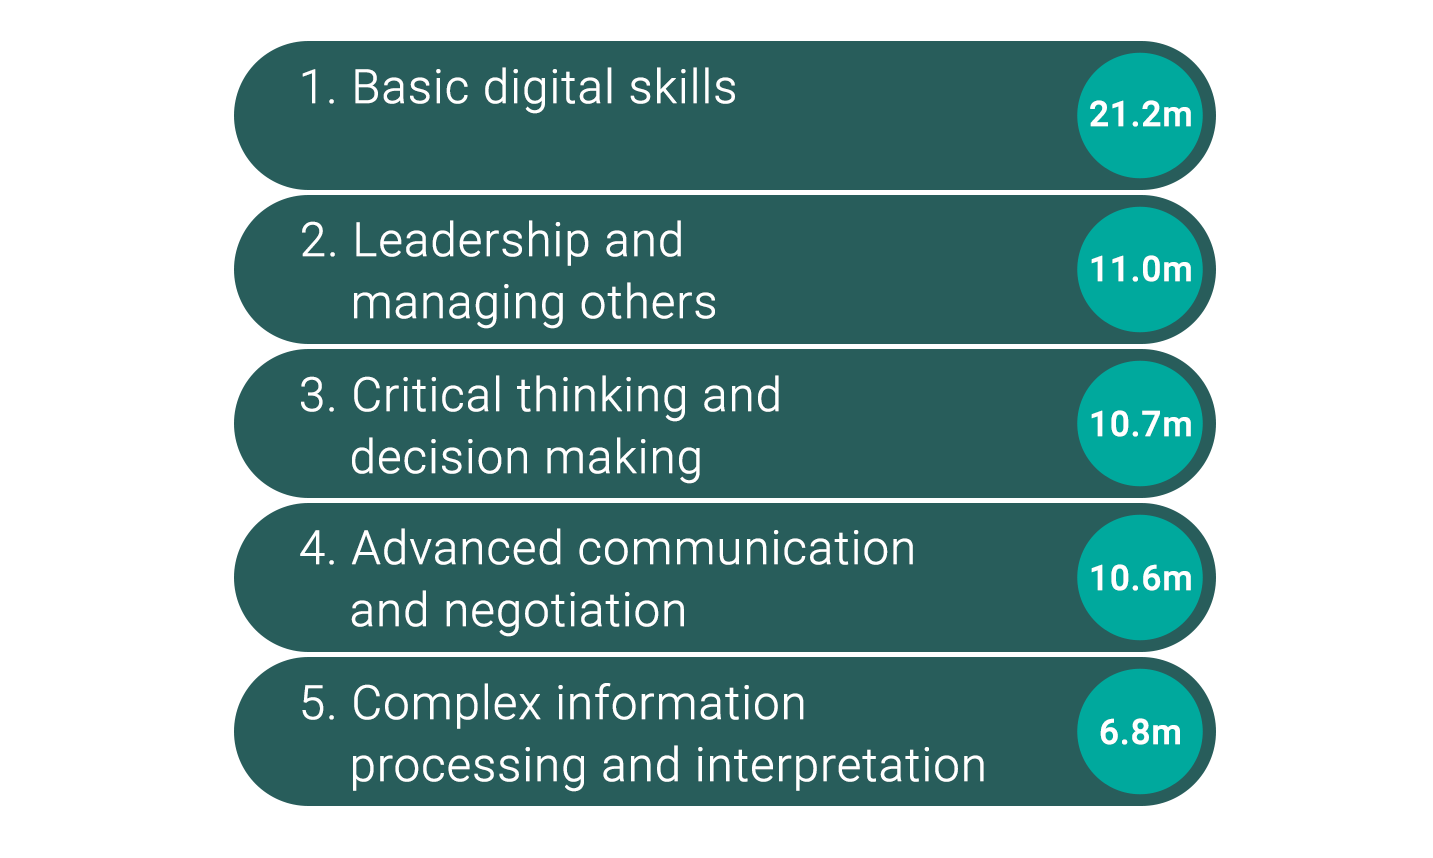 1. Basic digital skills: 21.2m 2. Leadership and managing others: 11.0m 3. Critical thinking and decision making: 10.7m 4. Advanced communication and negotiation: 10.6m 5. Complex information processing and interpretation: 6.8m